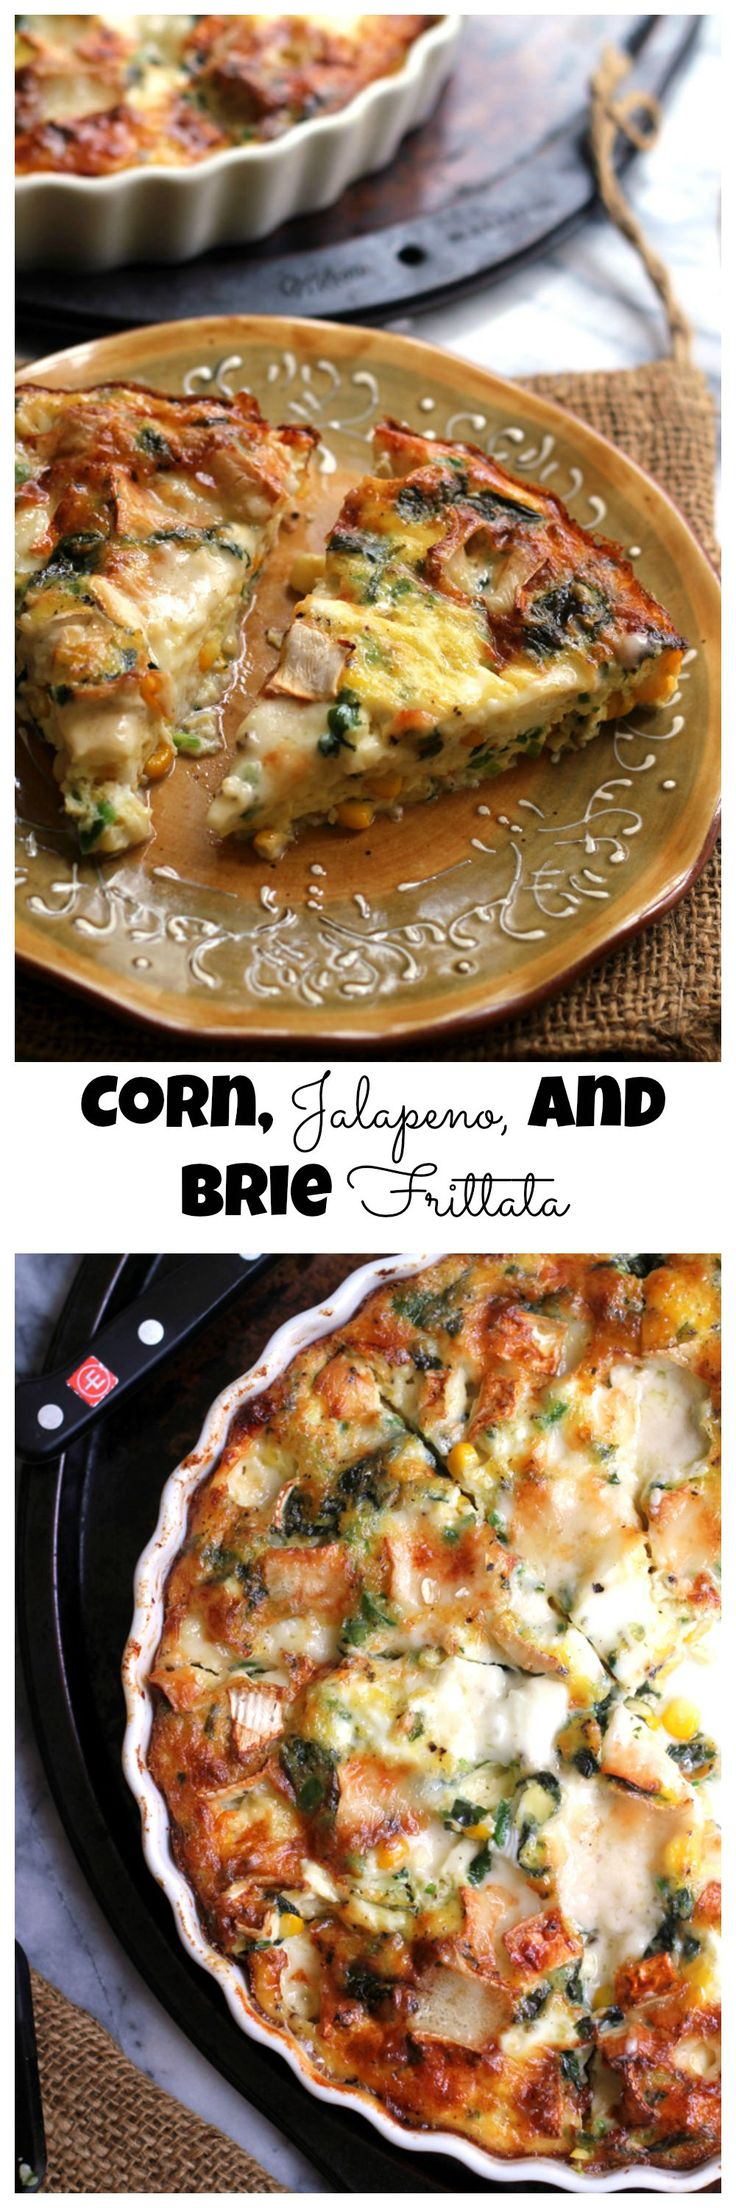 Corn, Jalapeno, and Brie Frittata | Recipe | Sweet corn, Sweet and ...